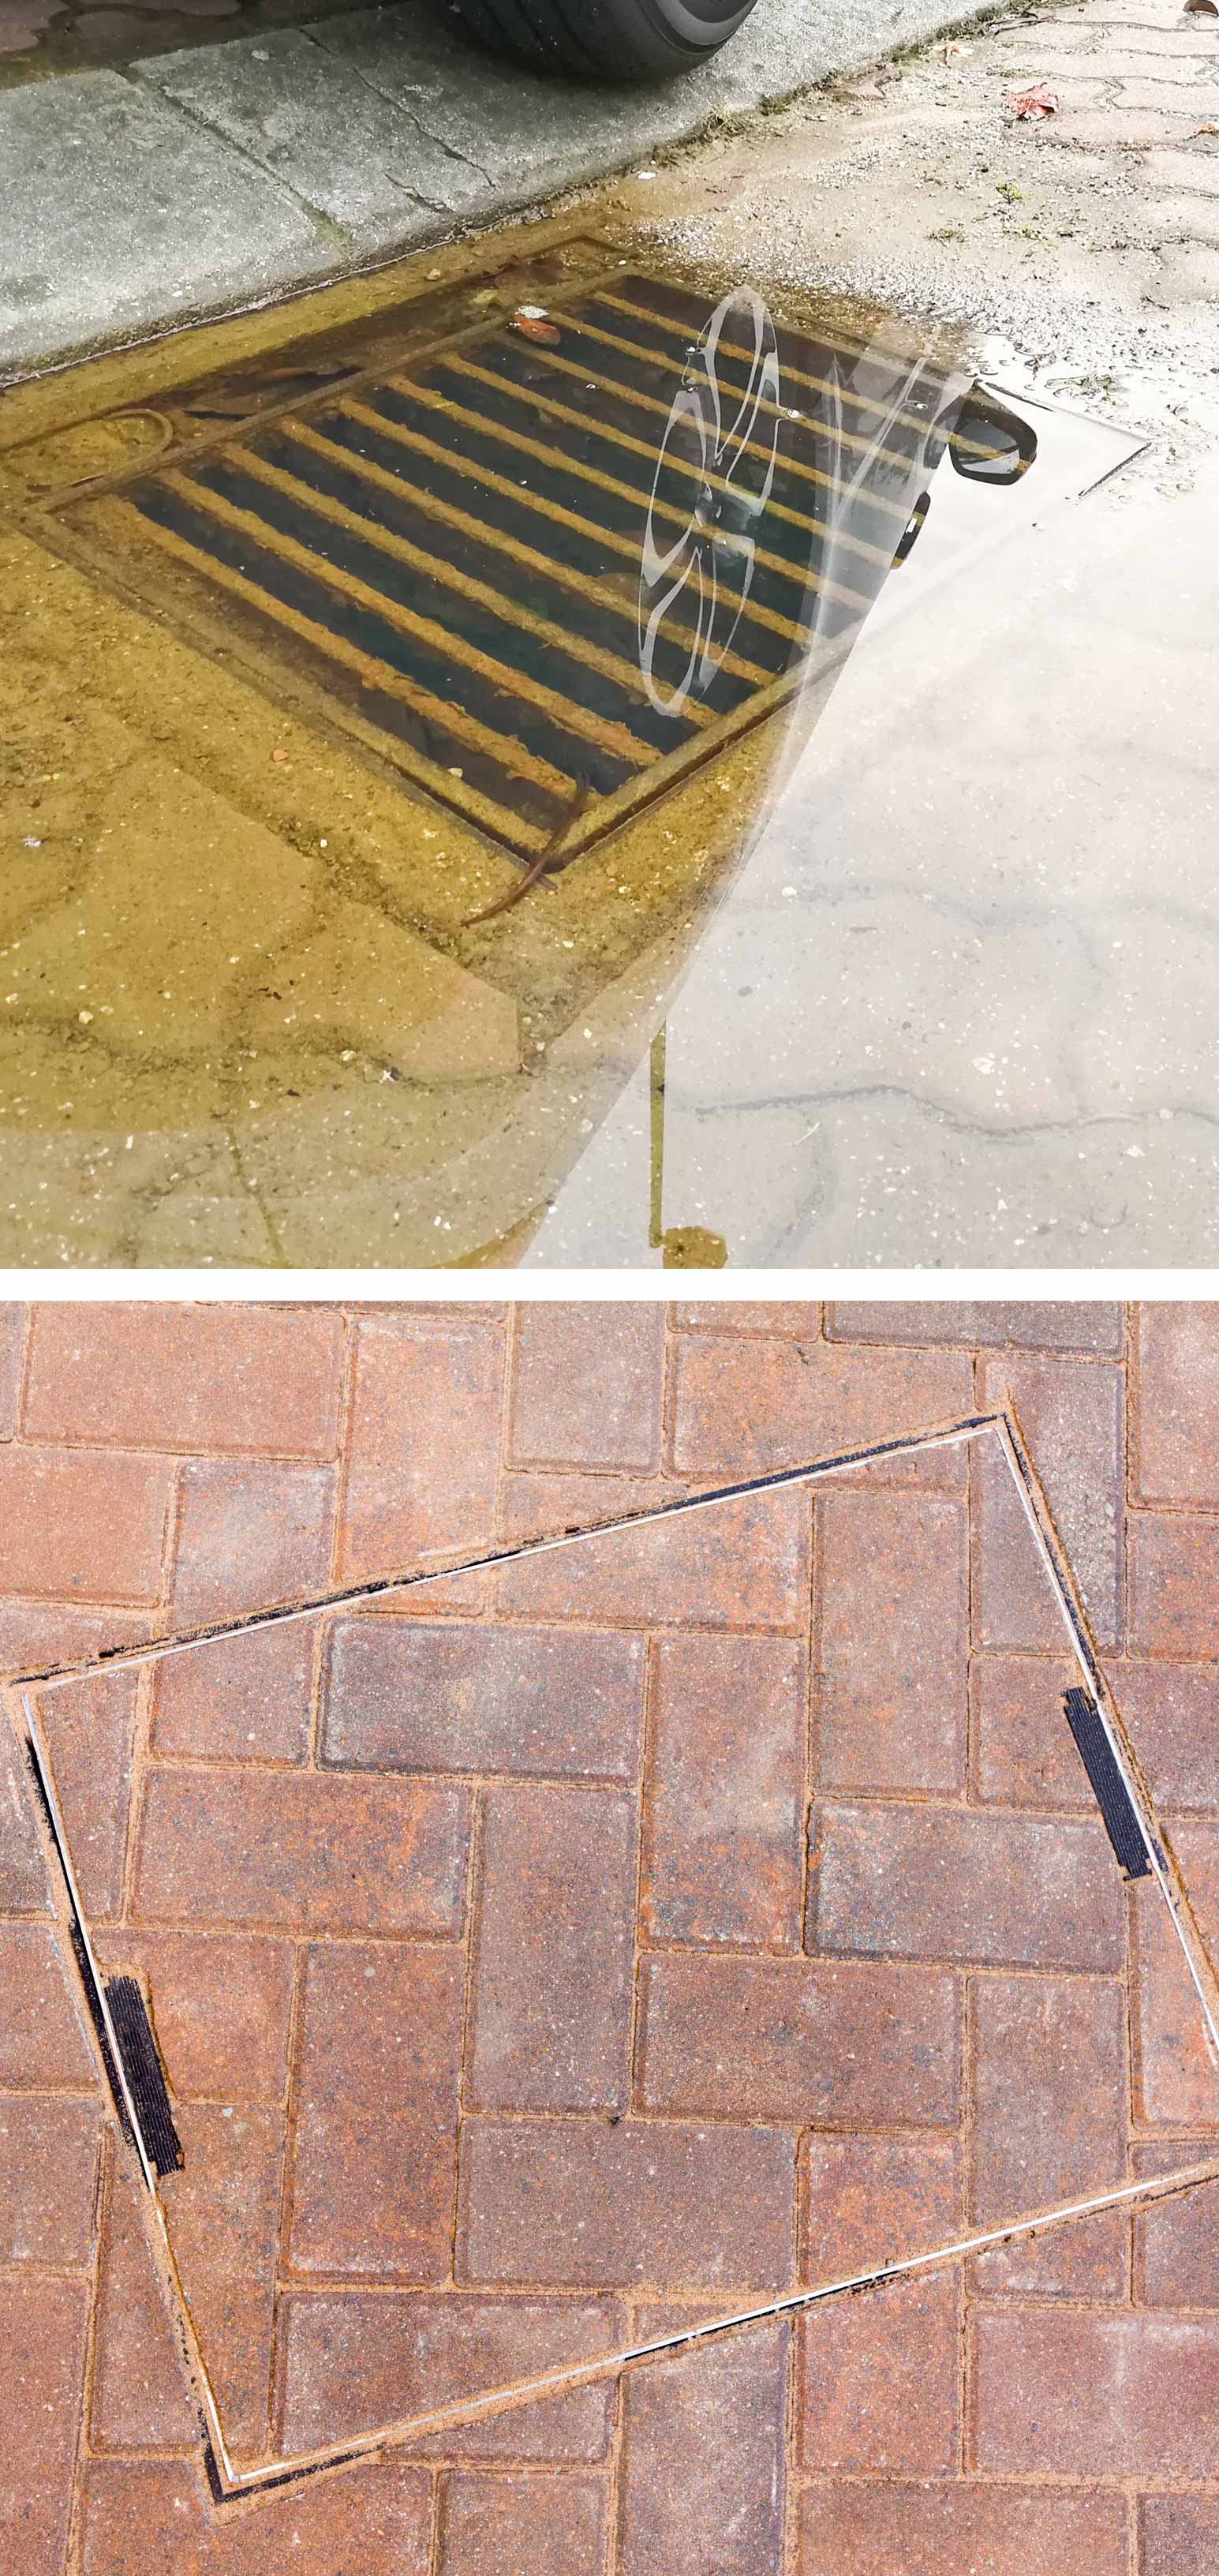 Blocked and Cleaned Drains in Cleveland